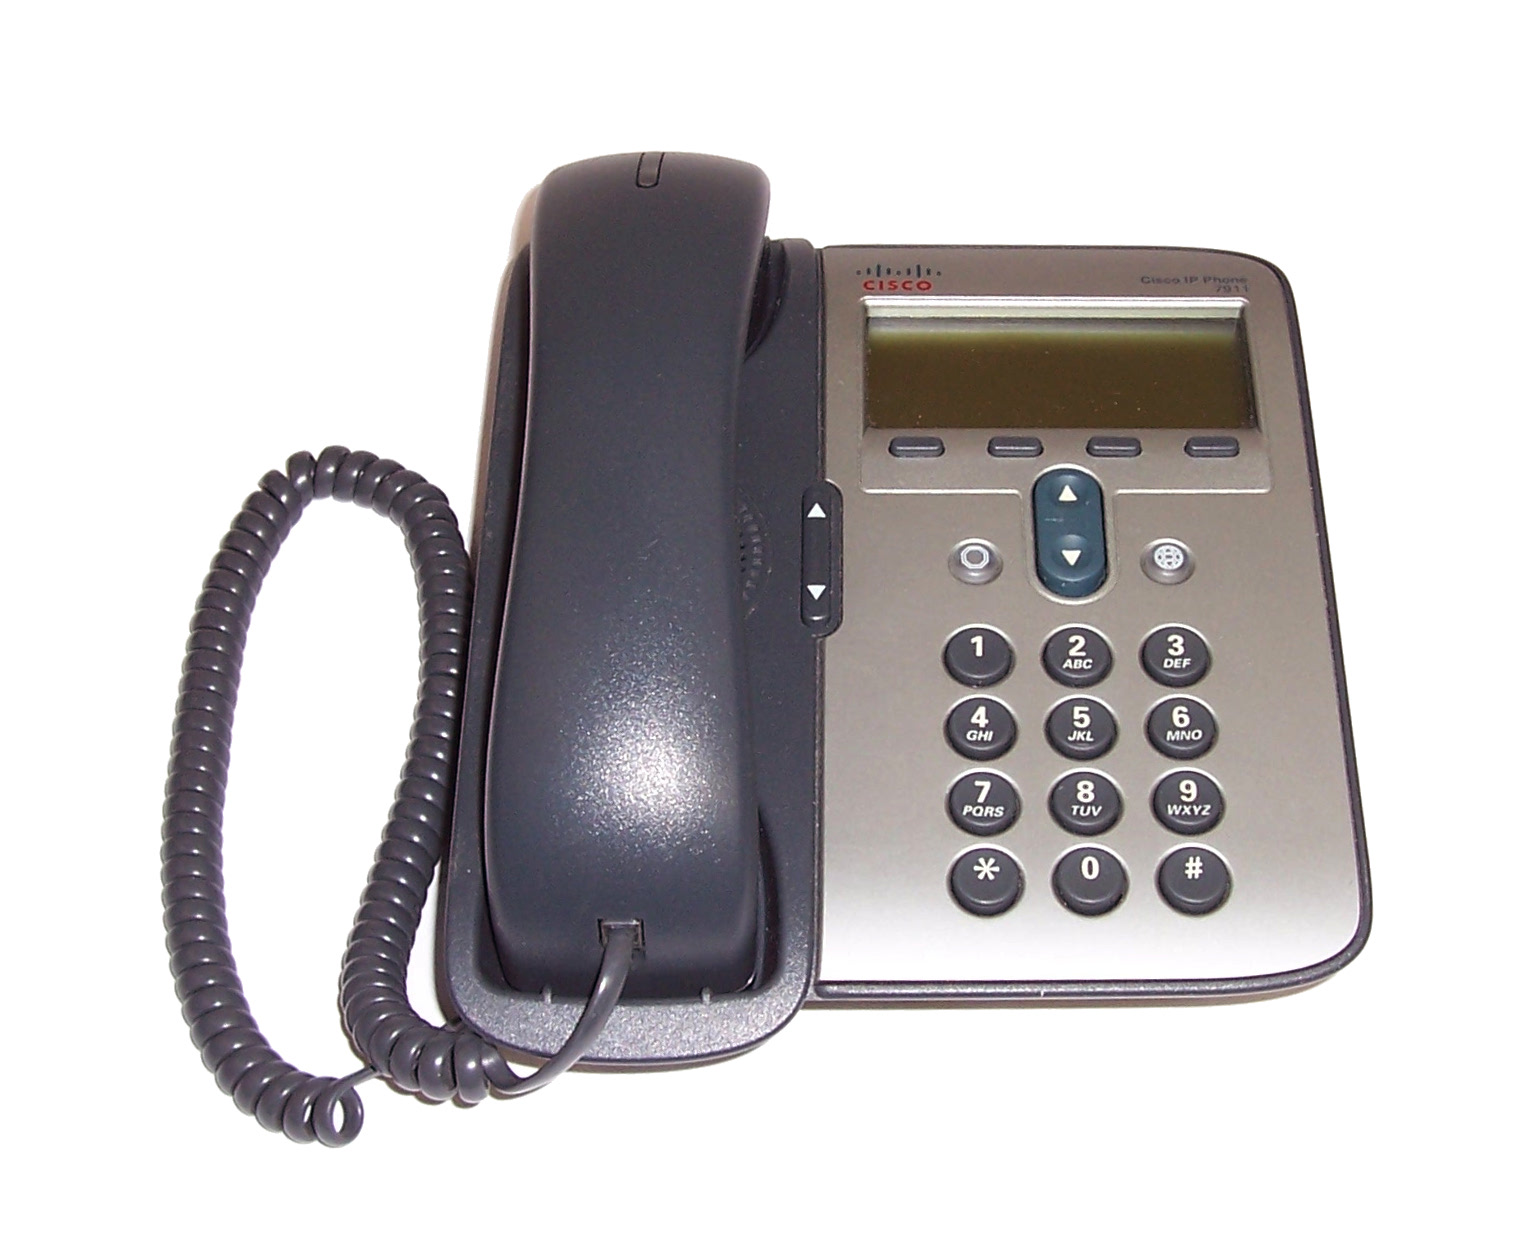 Cisco Ip Phone 7911g Firmware - crisebabe